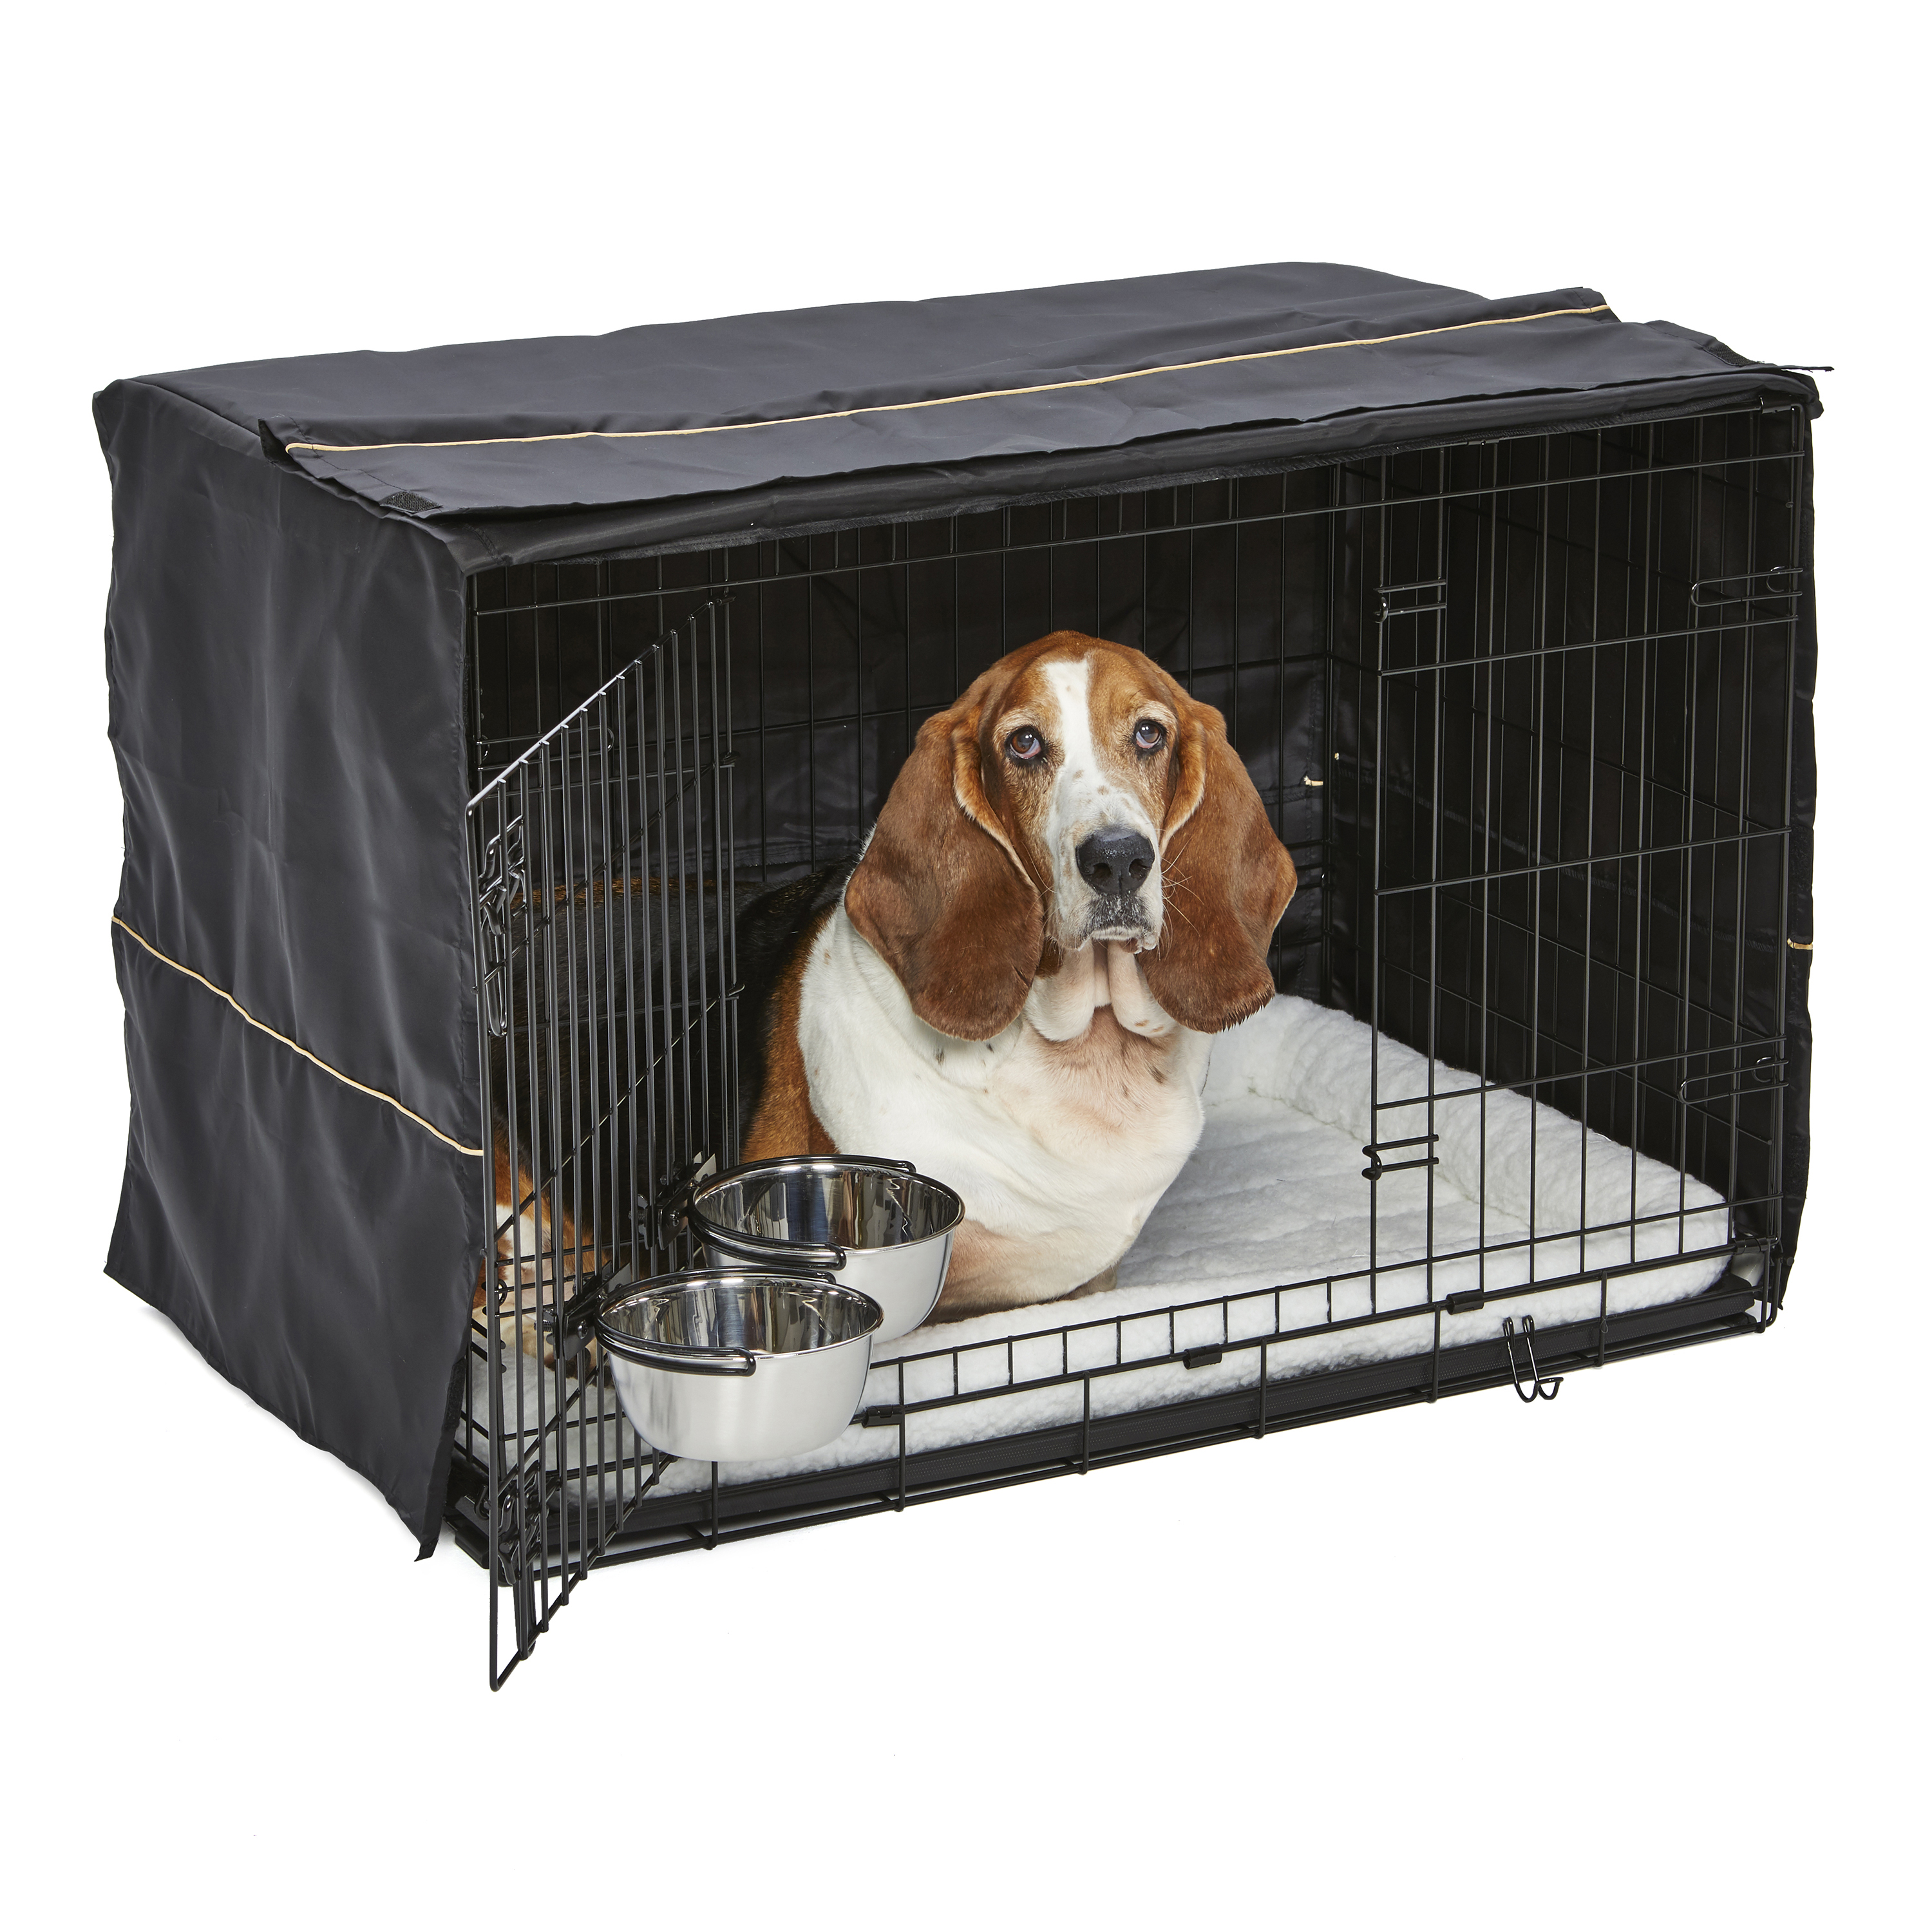 MidWest Homes for Pets Dog Crate Starter Kit | One 2-Door iCrate, Pet Bed, Crate Cover & 2 Pet Bowls | 36-Inch Ideal for Med./Large Dog Breeds